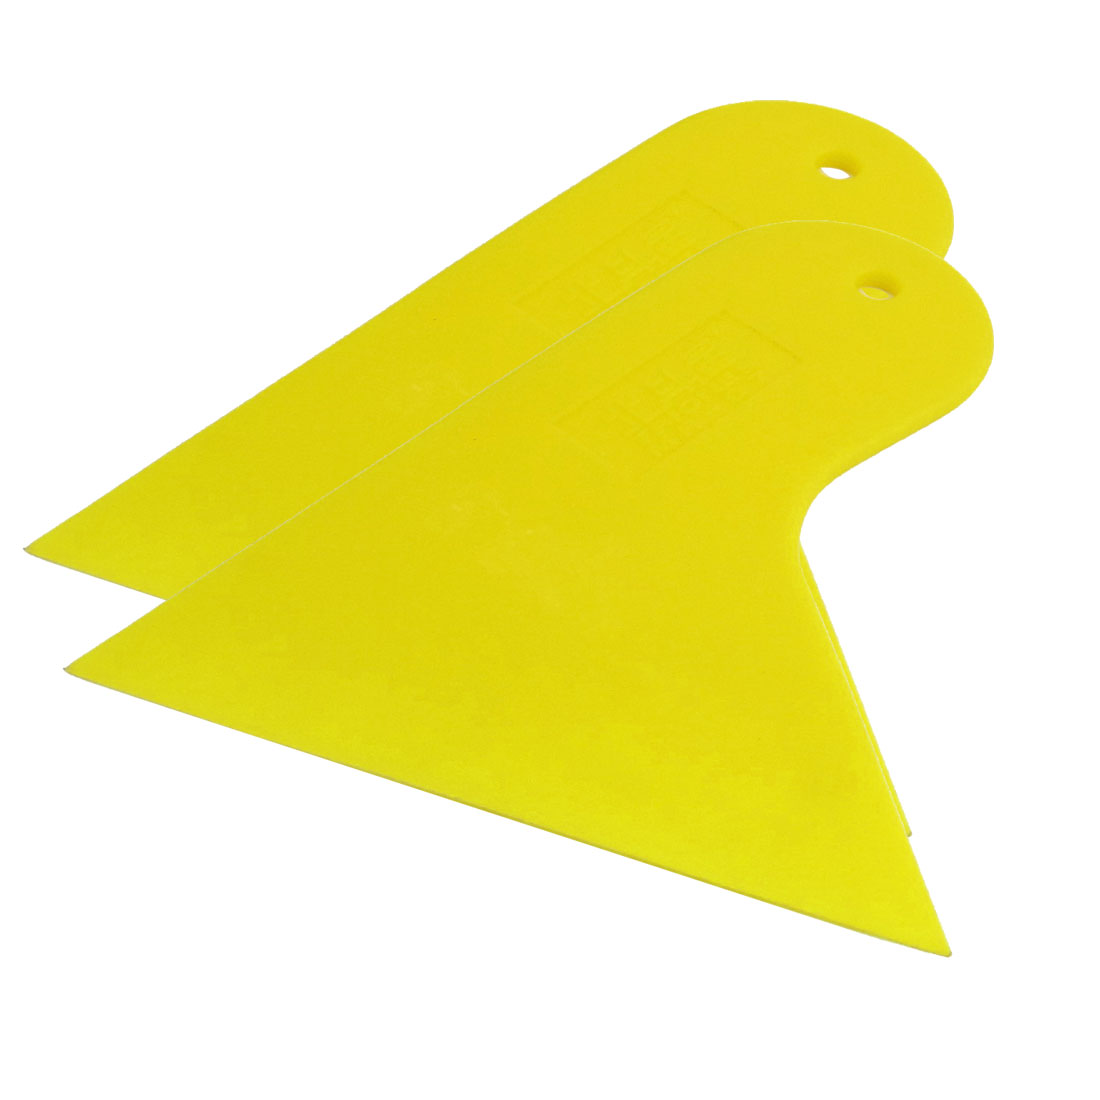 2 Pcs Auto Window Glass Sun Visor Film Tint Bubble Scraper Yellow